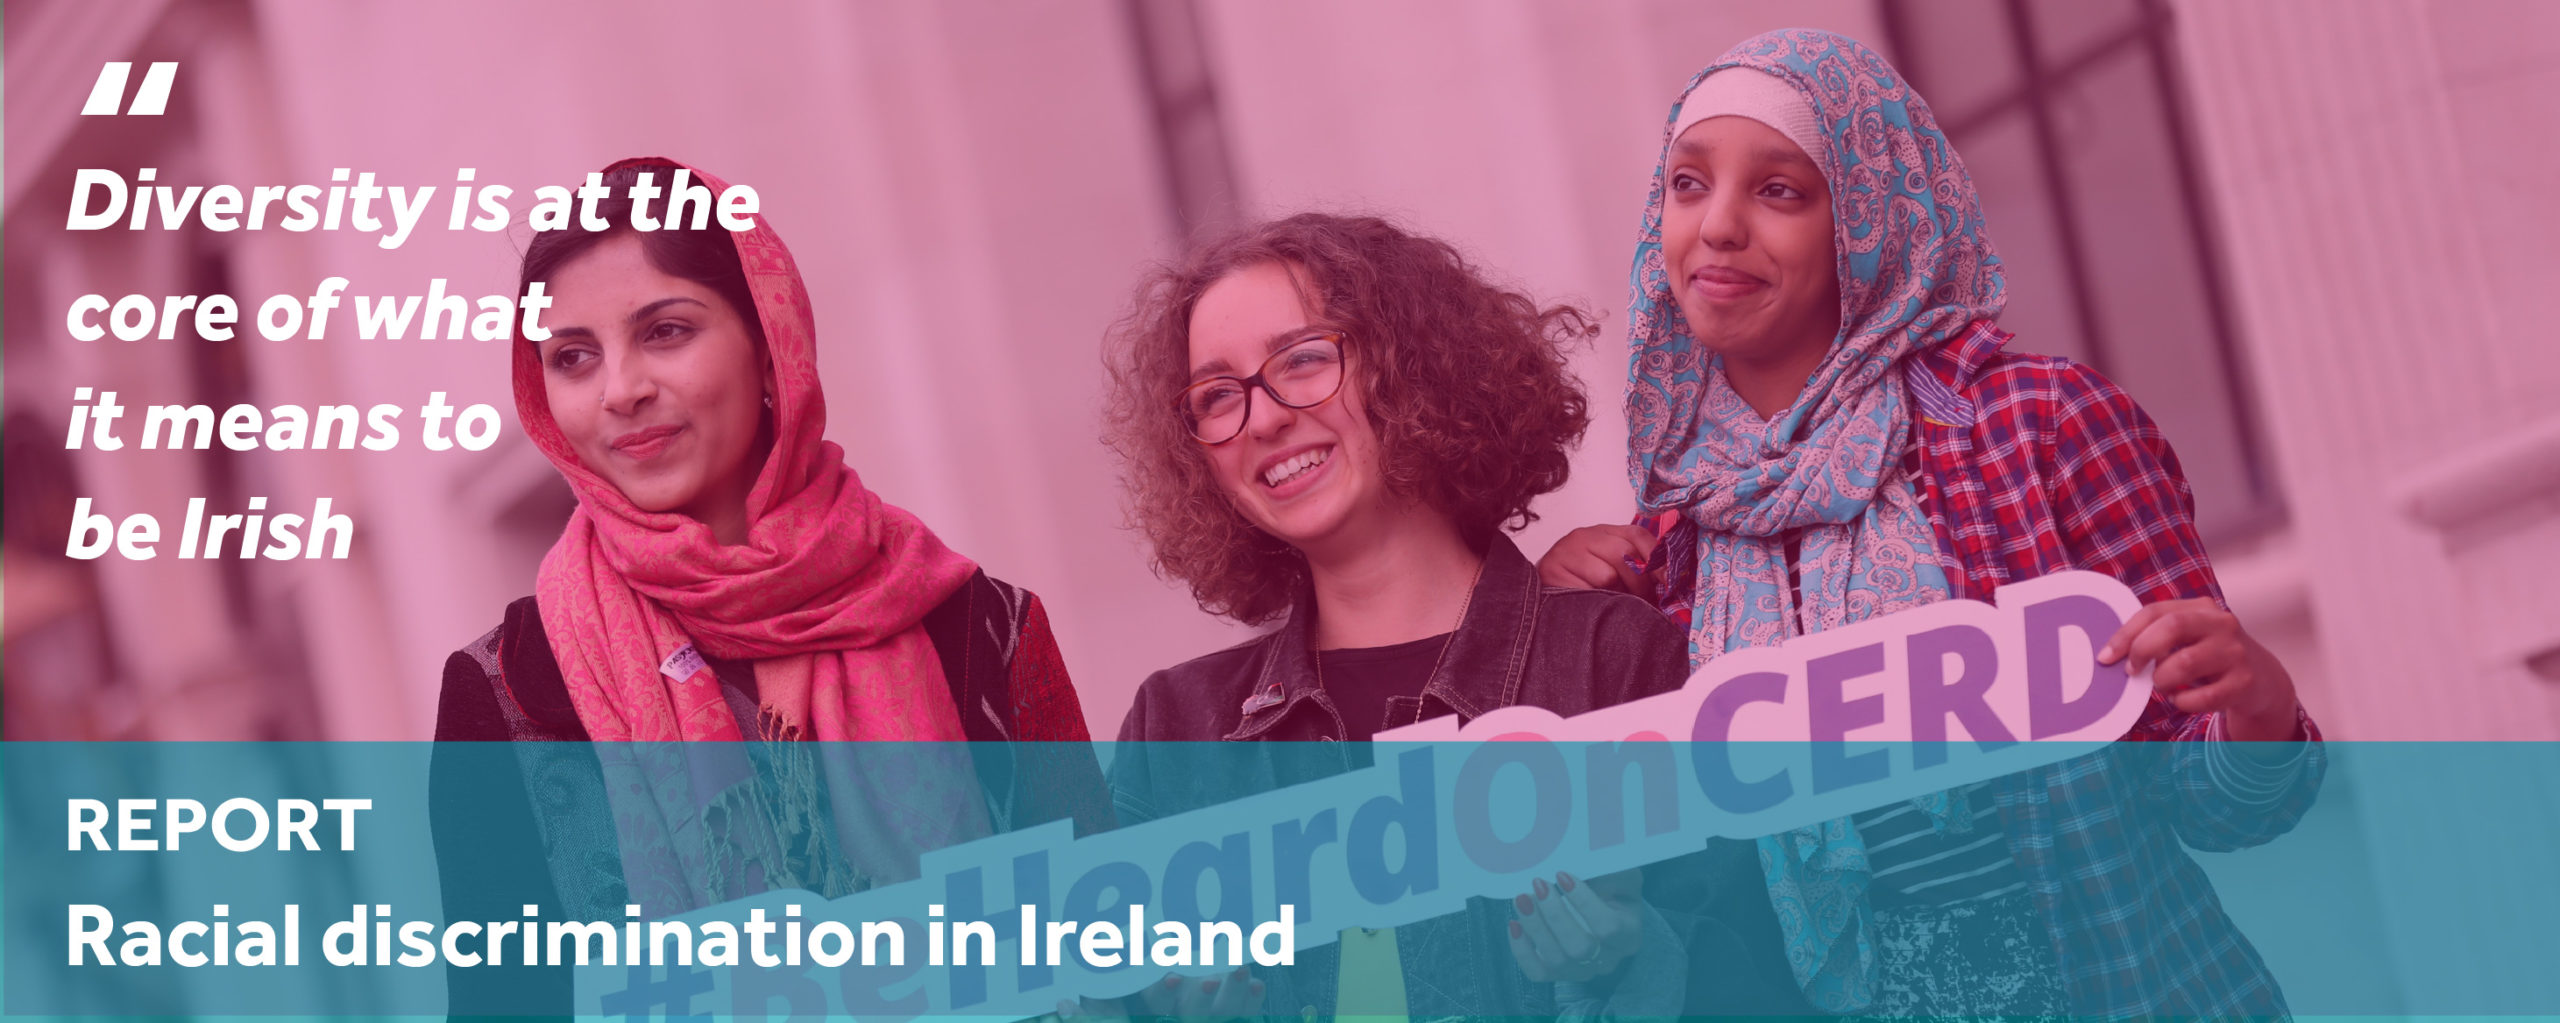 Because We're All Human. Means we're all equal. View our report on racial discrimination in Ireland here.